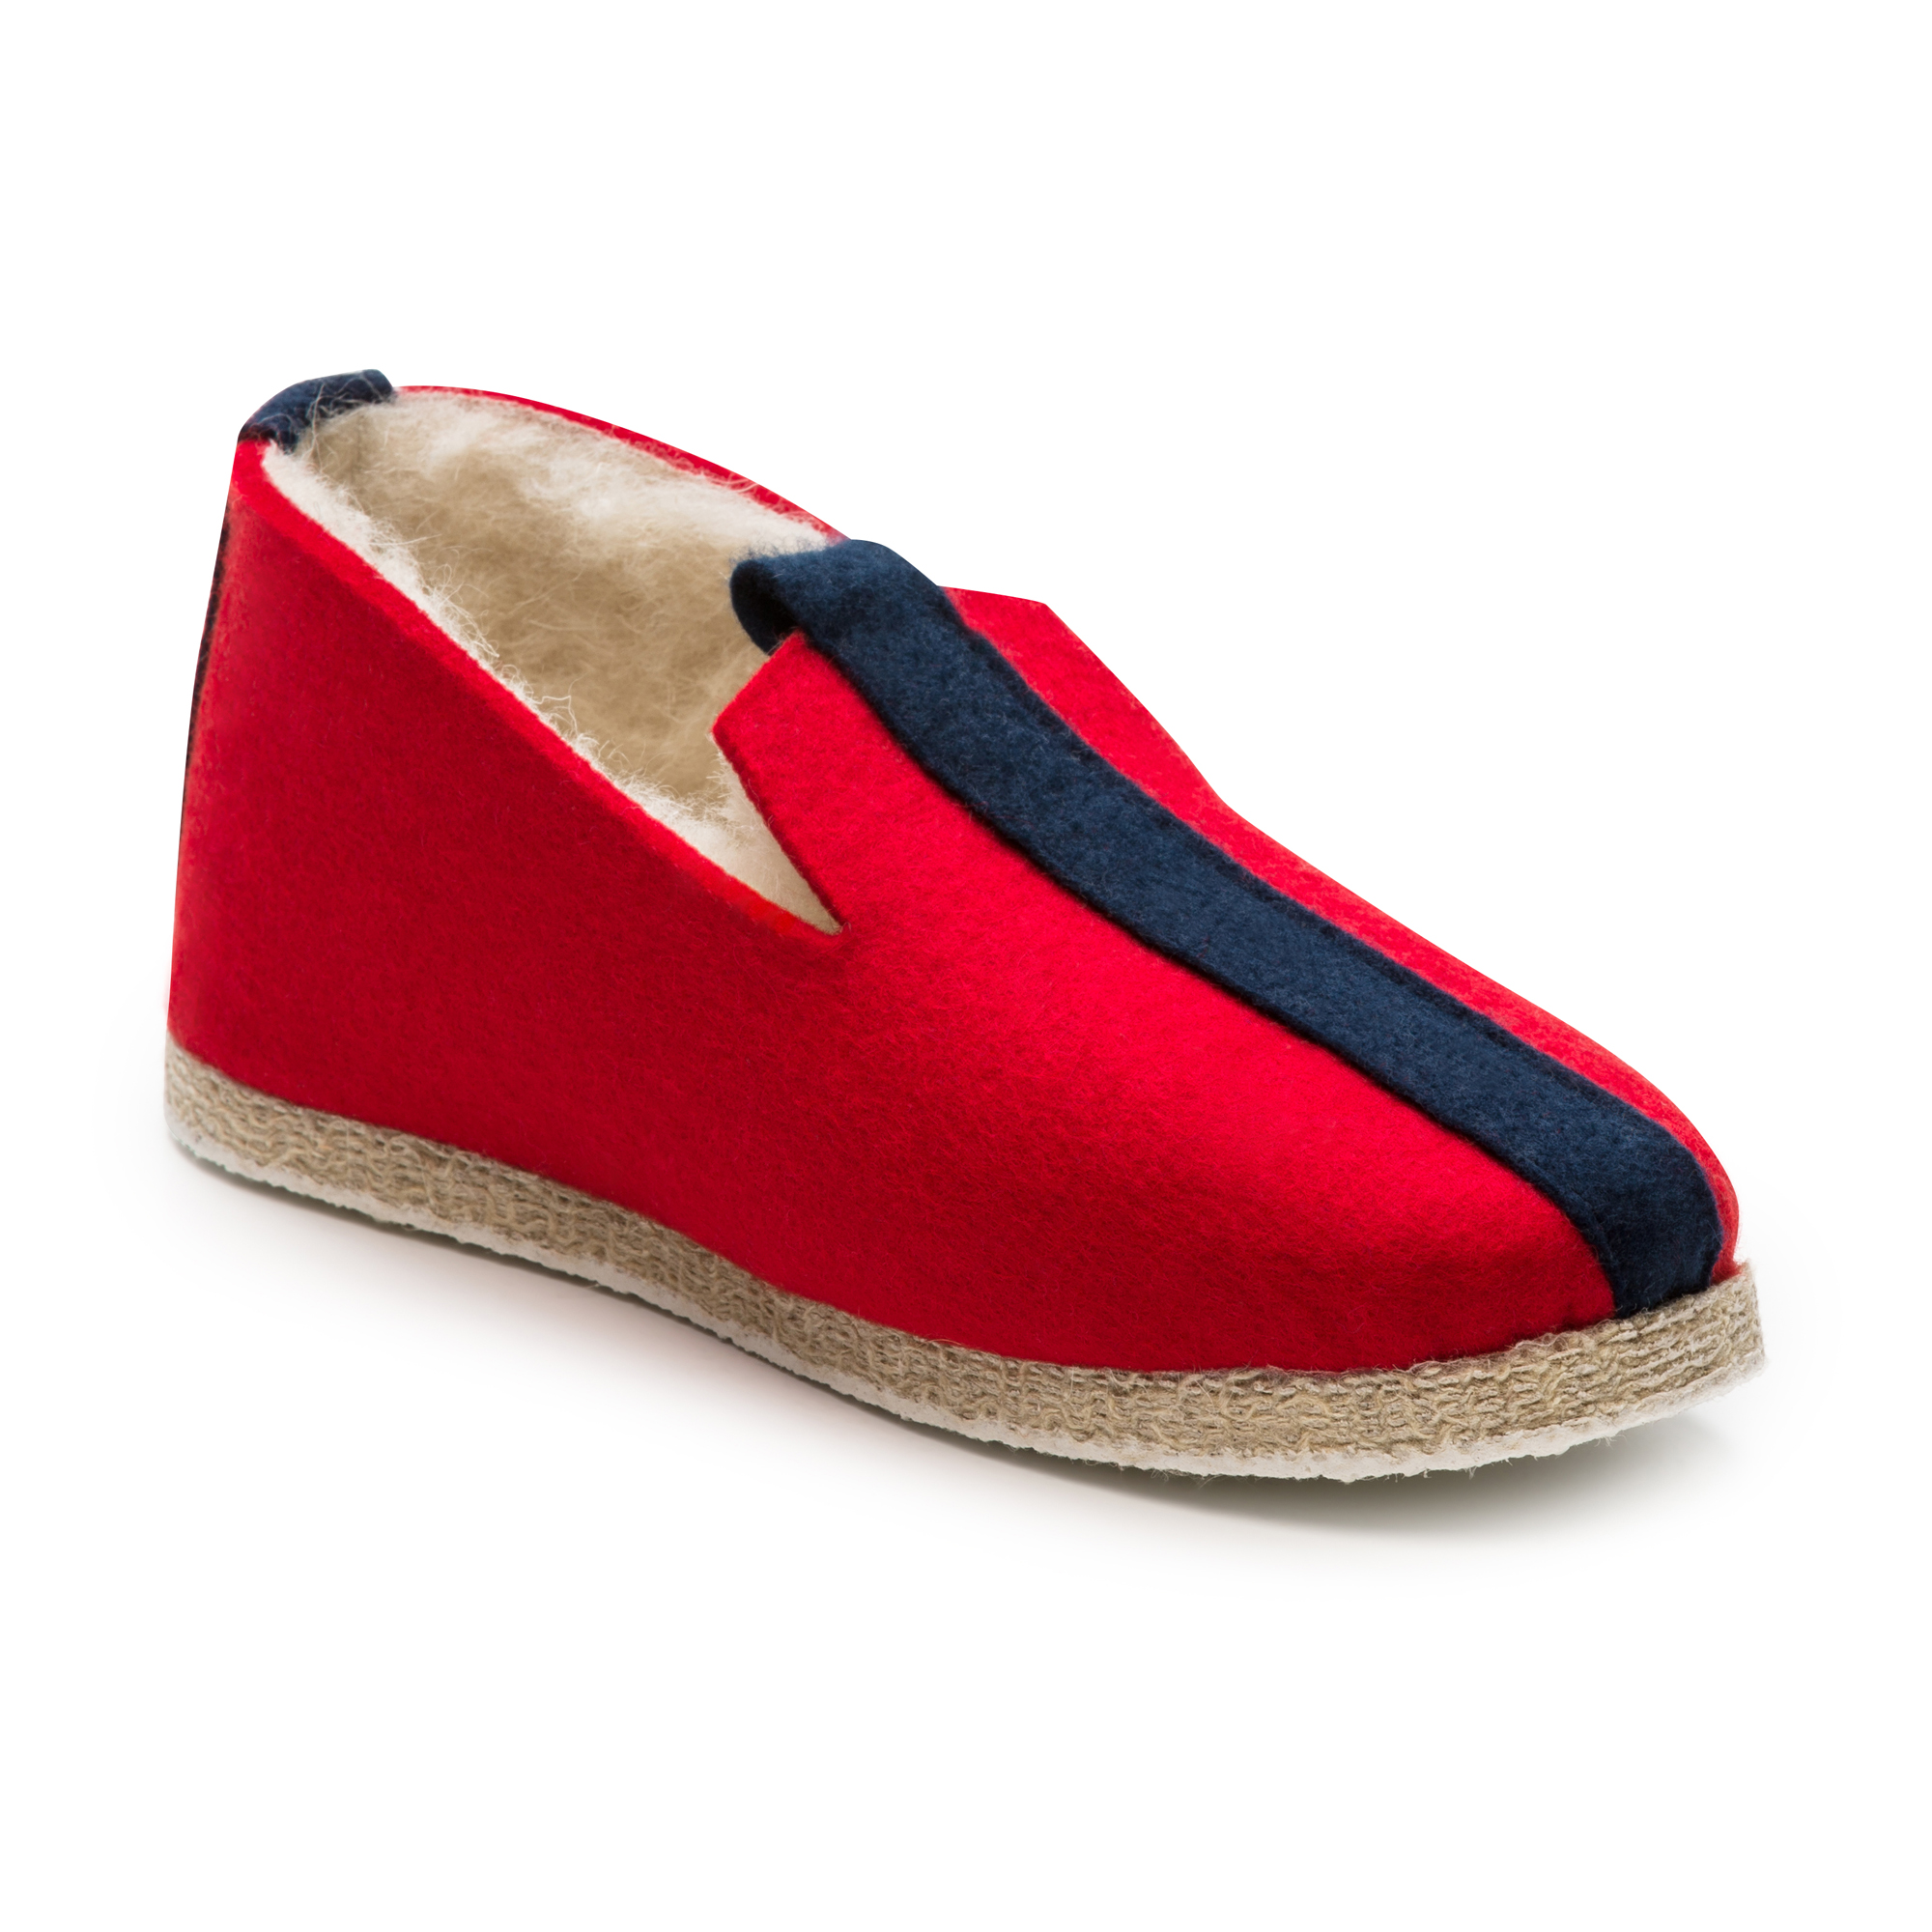 Chaussons/charentaises NEO